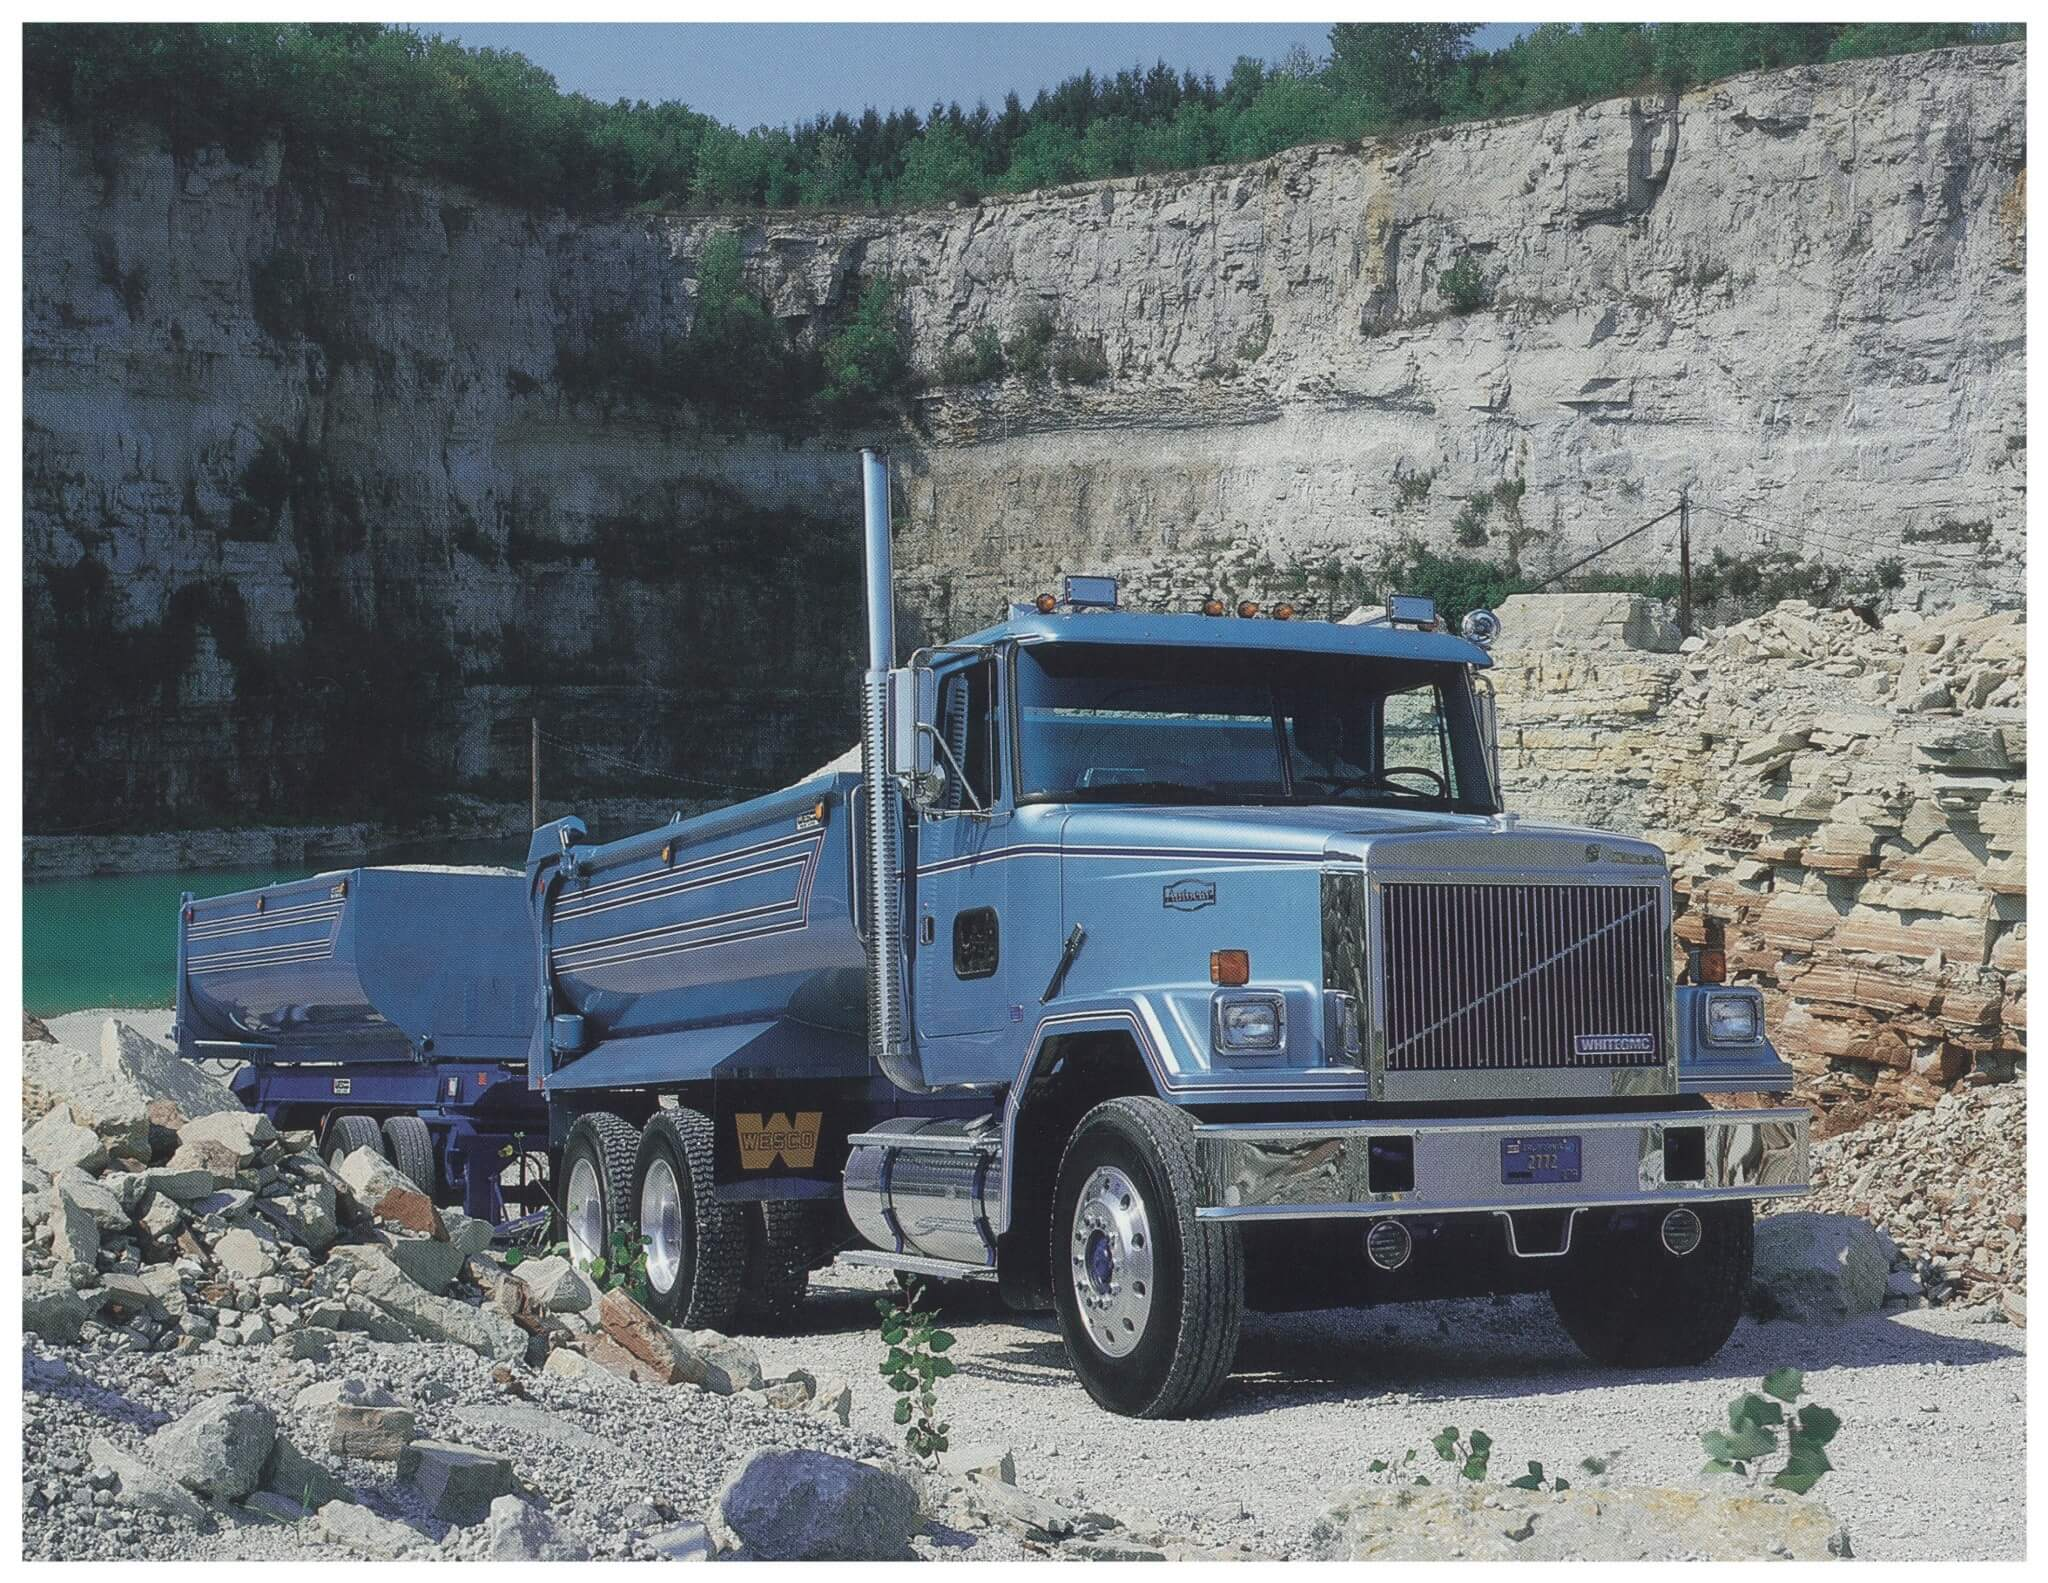 Volvo purchased the total assets of White Motors and that included Autocar. GM's heavy-duty truck line was later added. After the brand component merger, this fine example of a White/GMC/Autocar diesel conventional was one result.